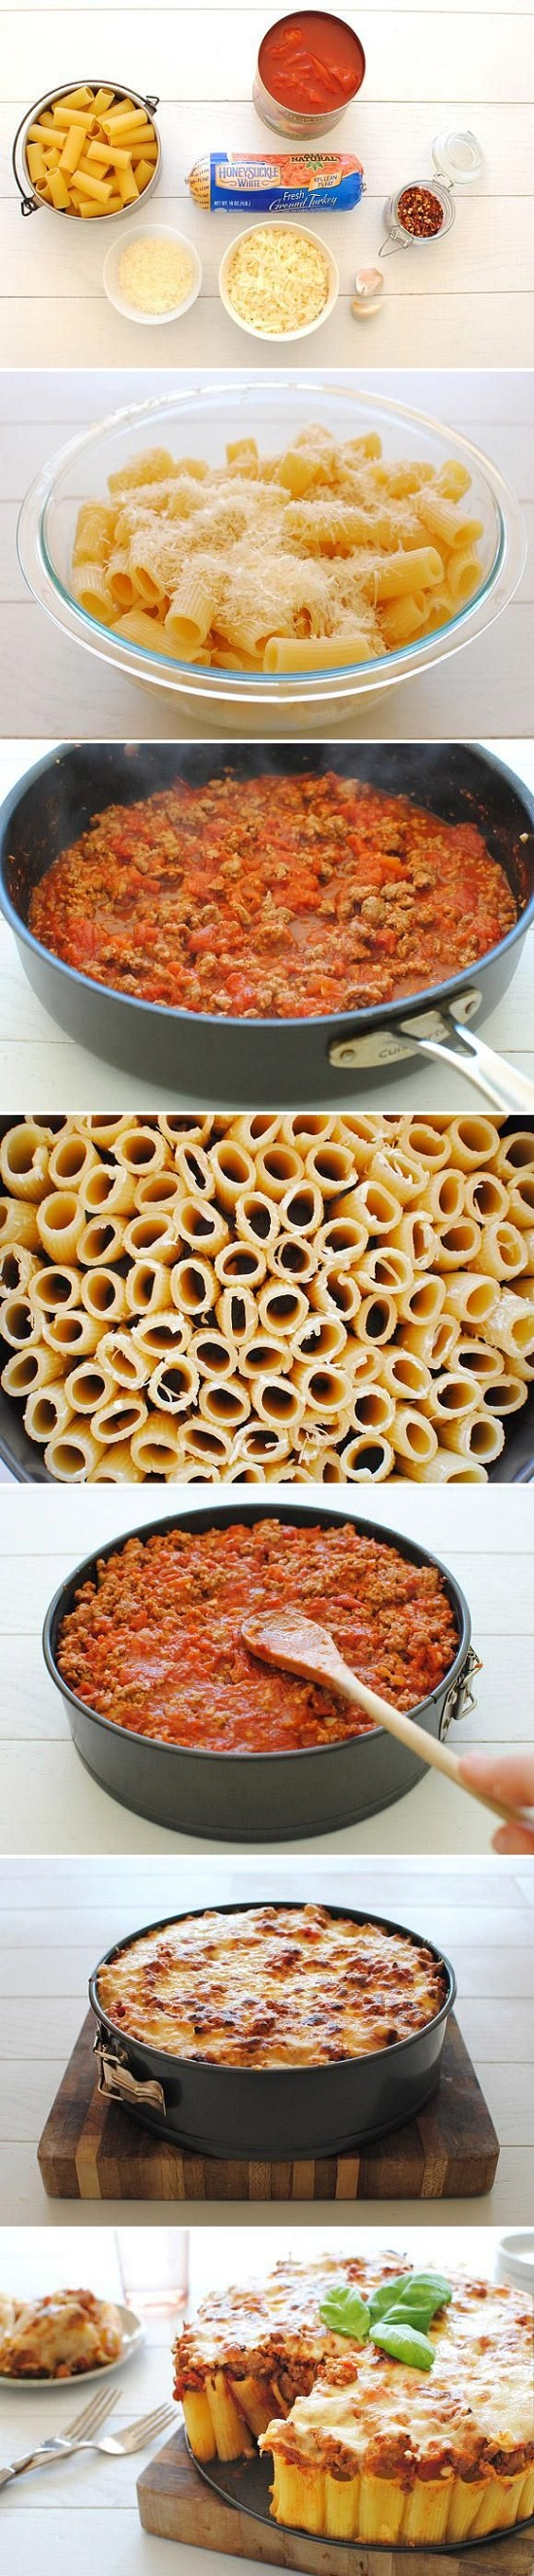 Rigatoni-Pasta-Pie-Recipe